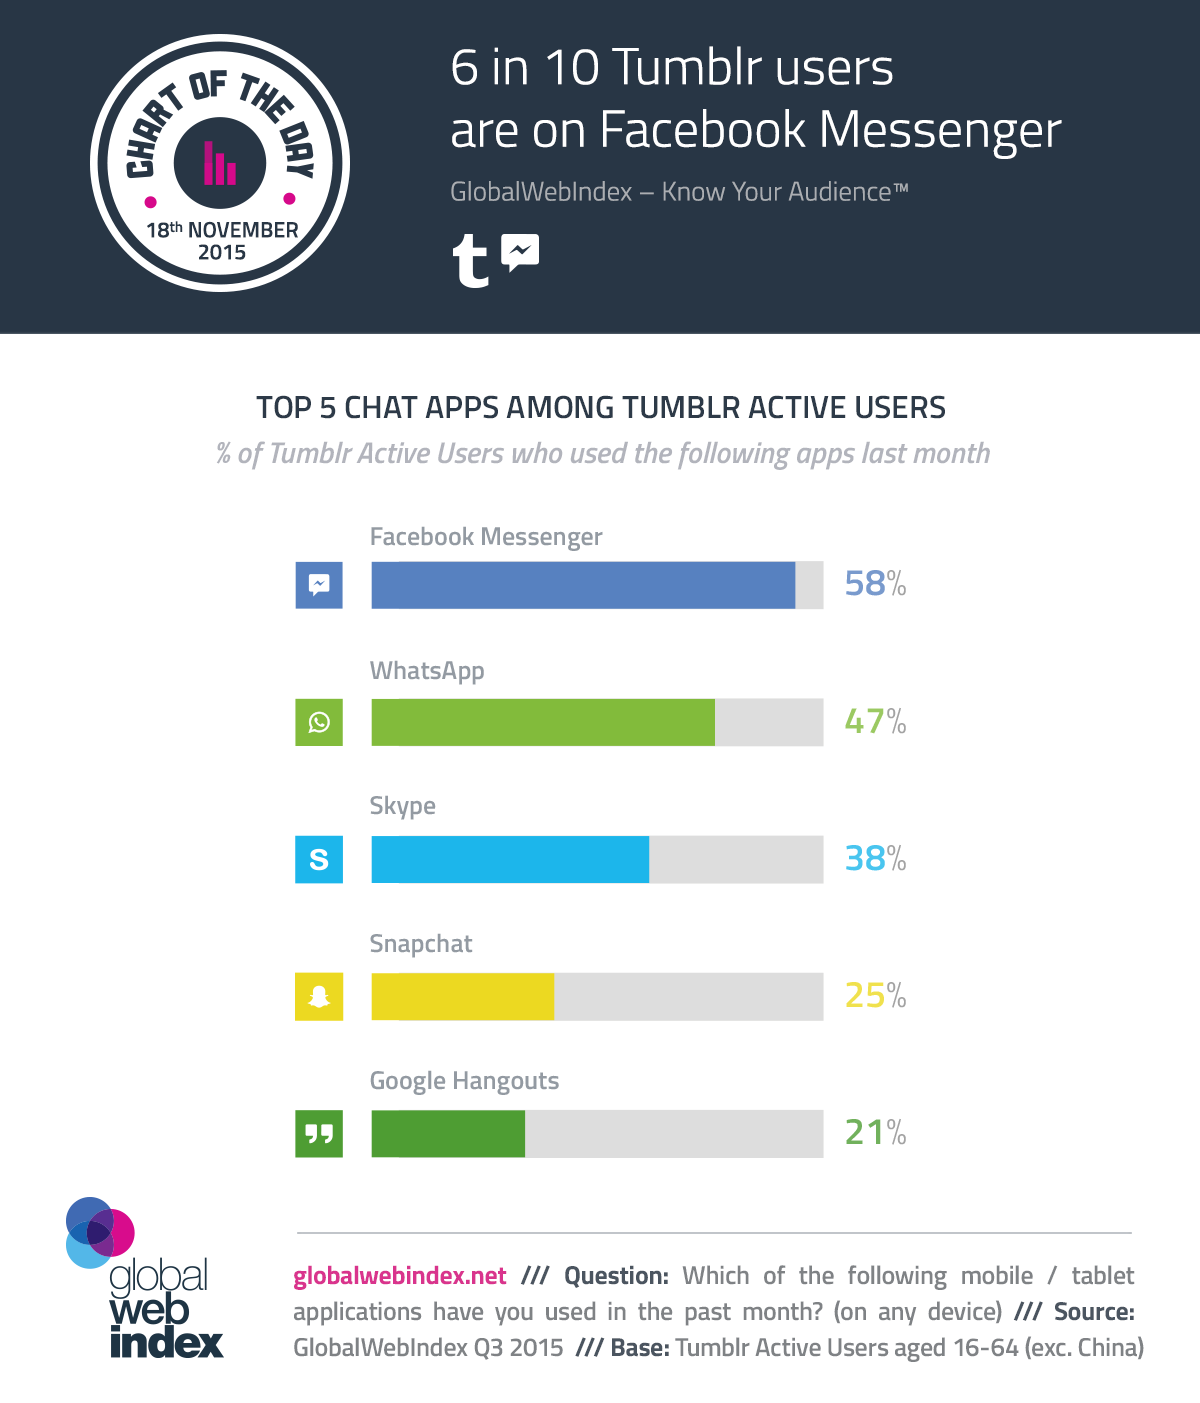 COTD-Charts-3week-November-2015-6-in-10-tumblr-users-are-on-facebook-messenger.png